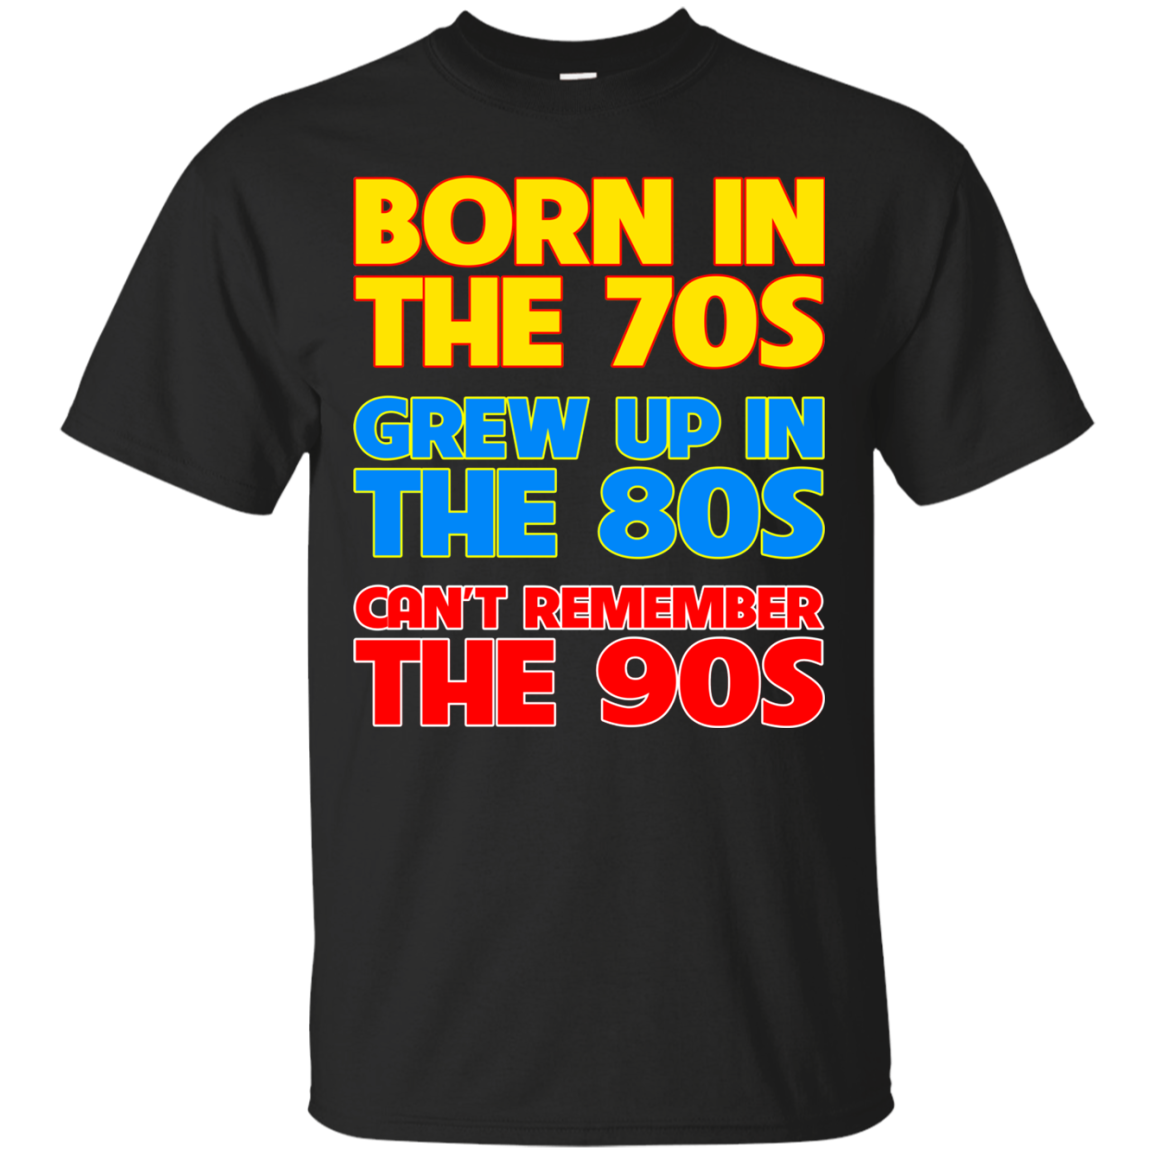 2b13e2a21d19 Born In The 70s - Grew Up In The 80s - Can t Remember The 90s T-shirt